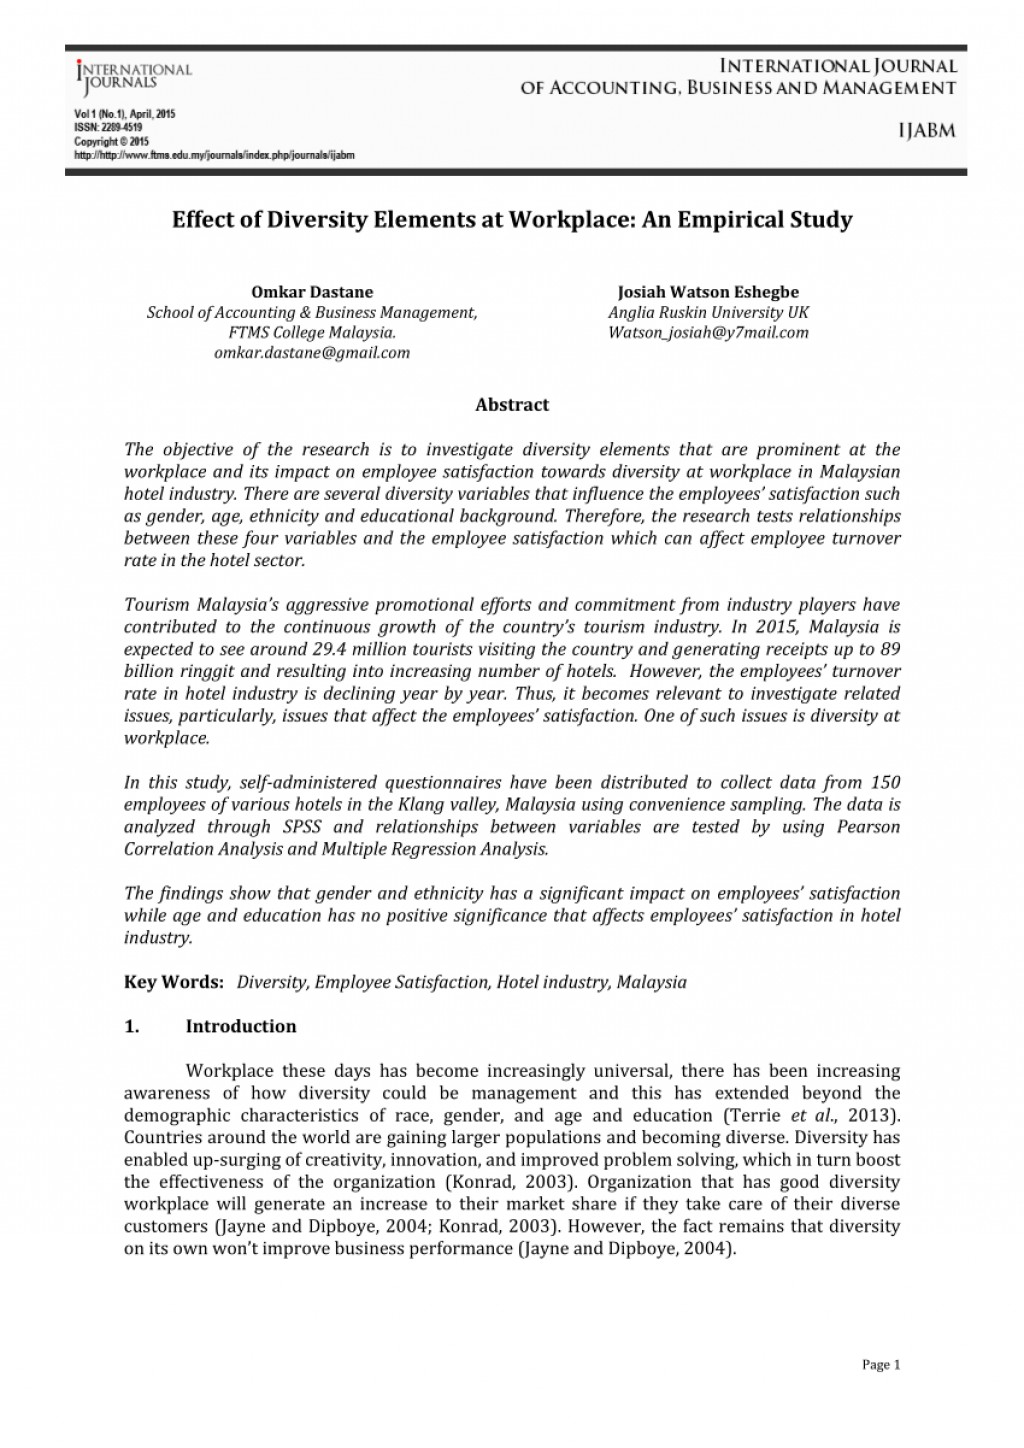 003 Business Topics For Research Paper Workplace Diversity Outstanding Large